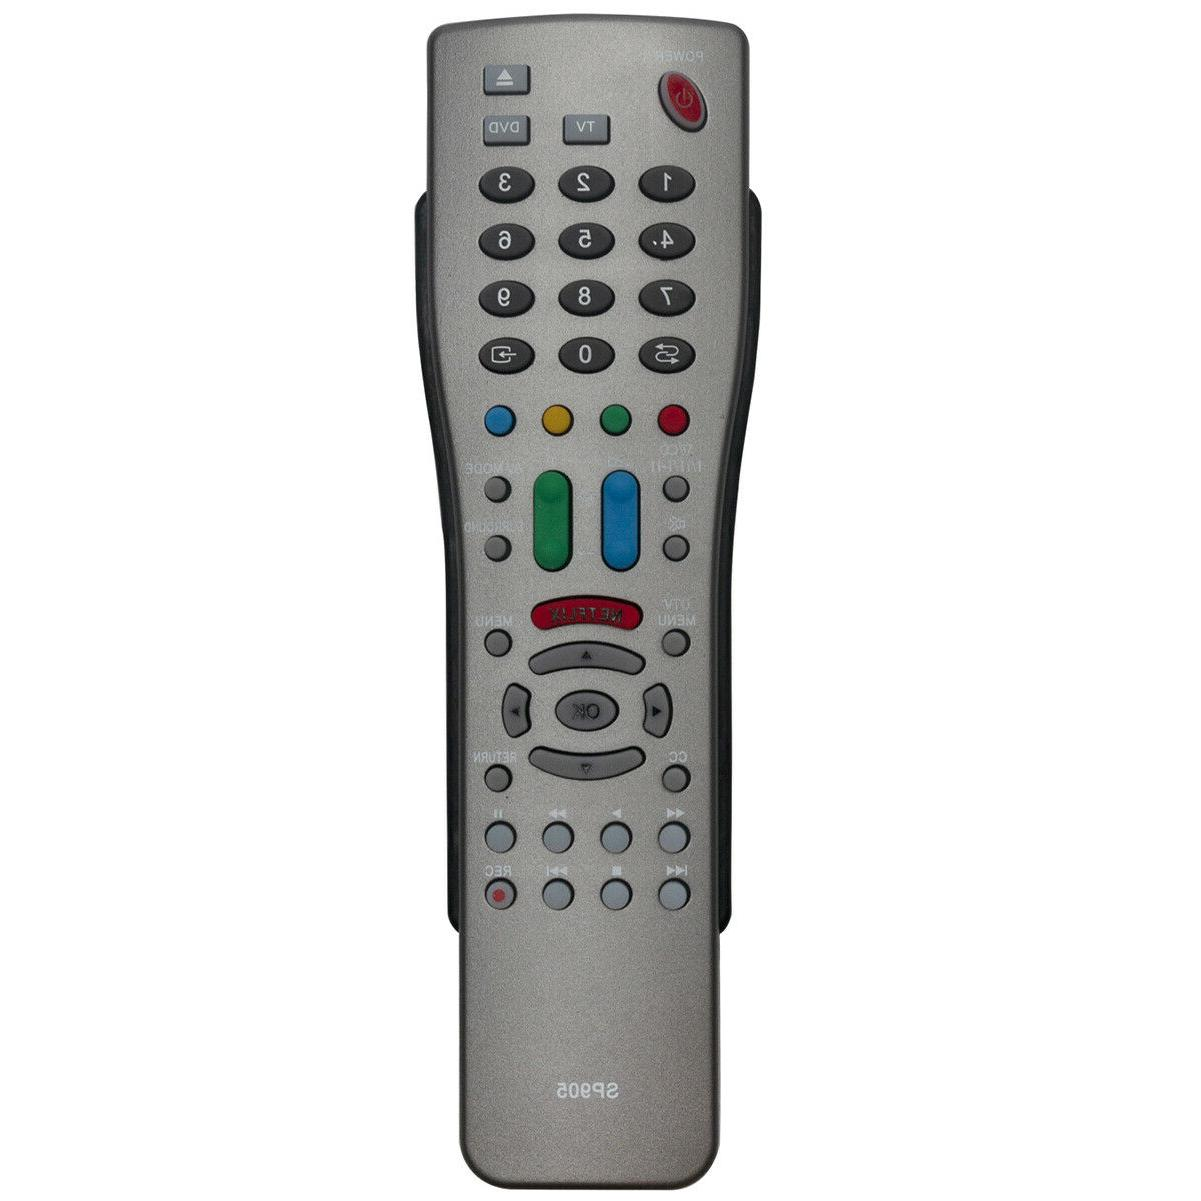 New SP905 Universal Remote Control for Sharp LCD TV DVD Play